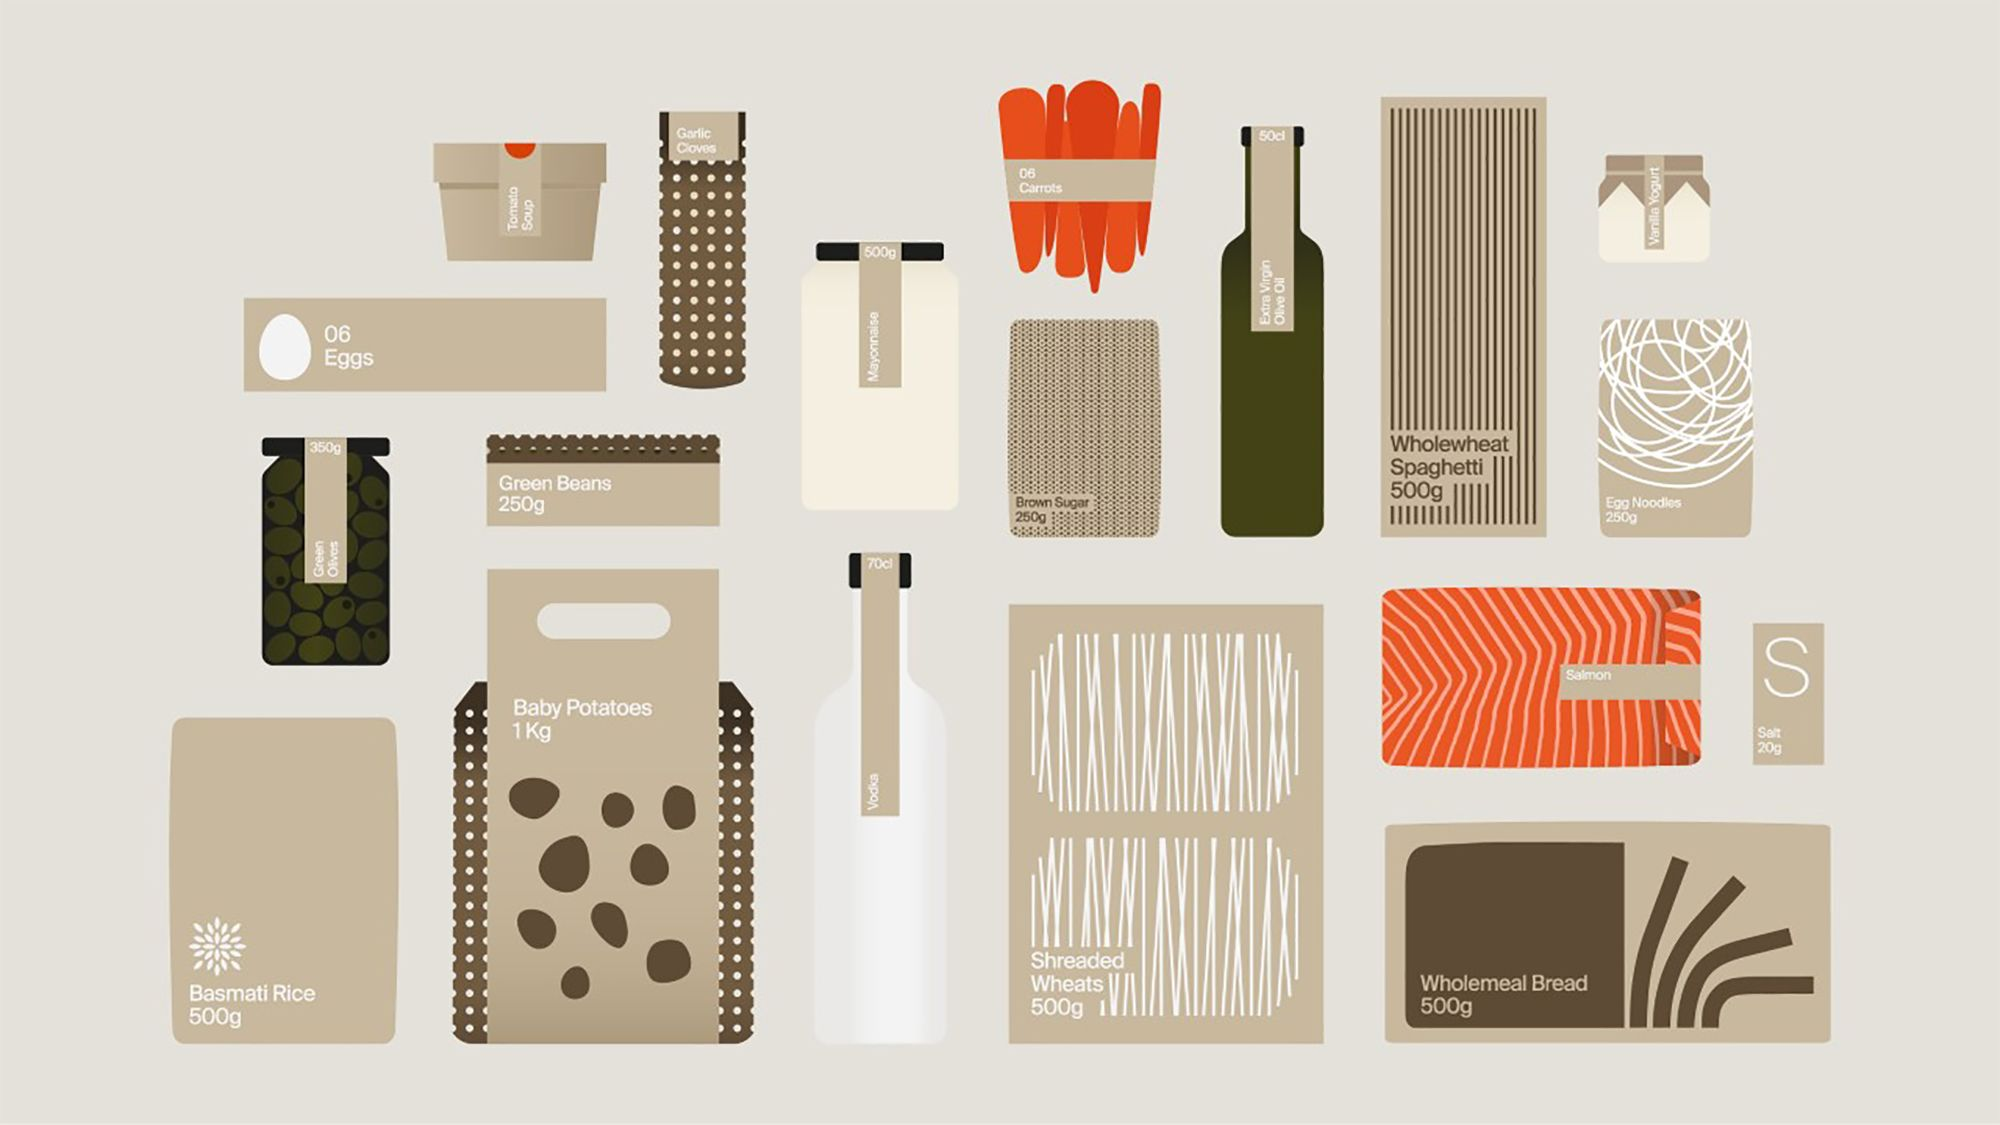 Images of food packaging